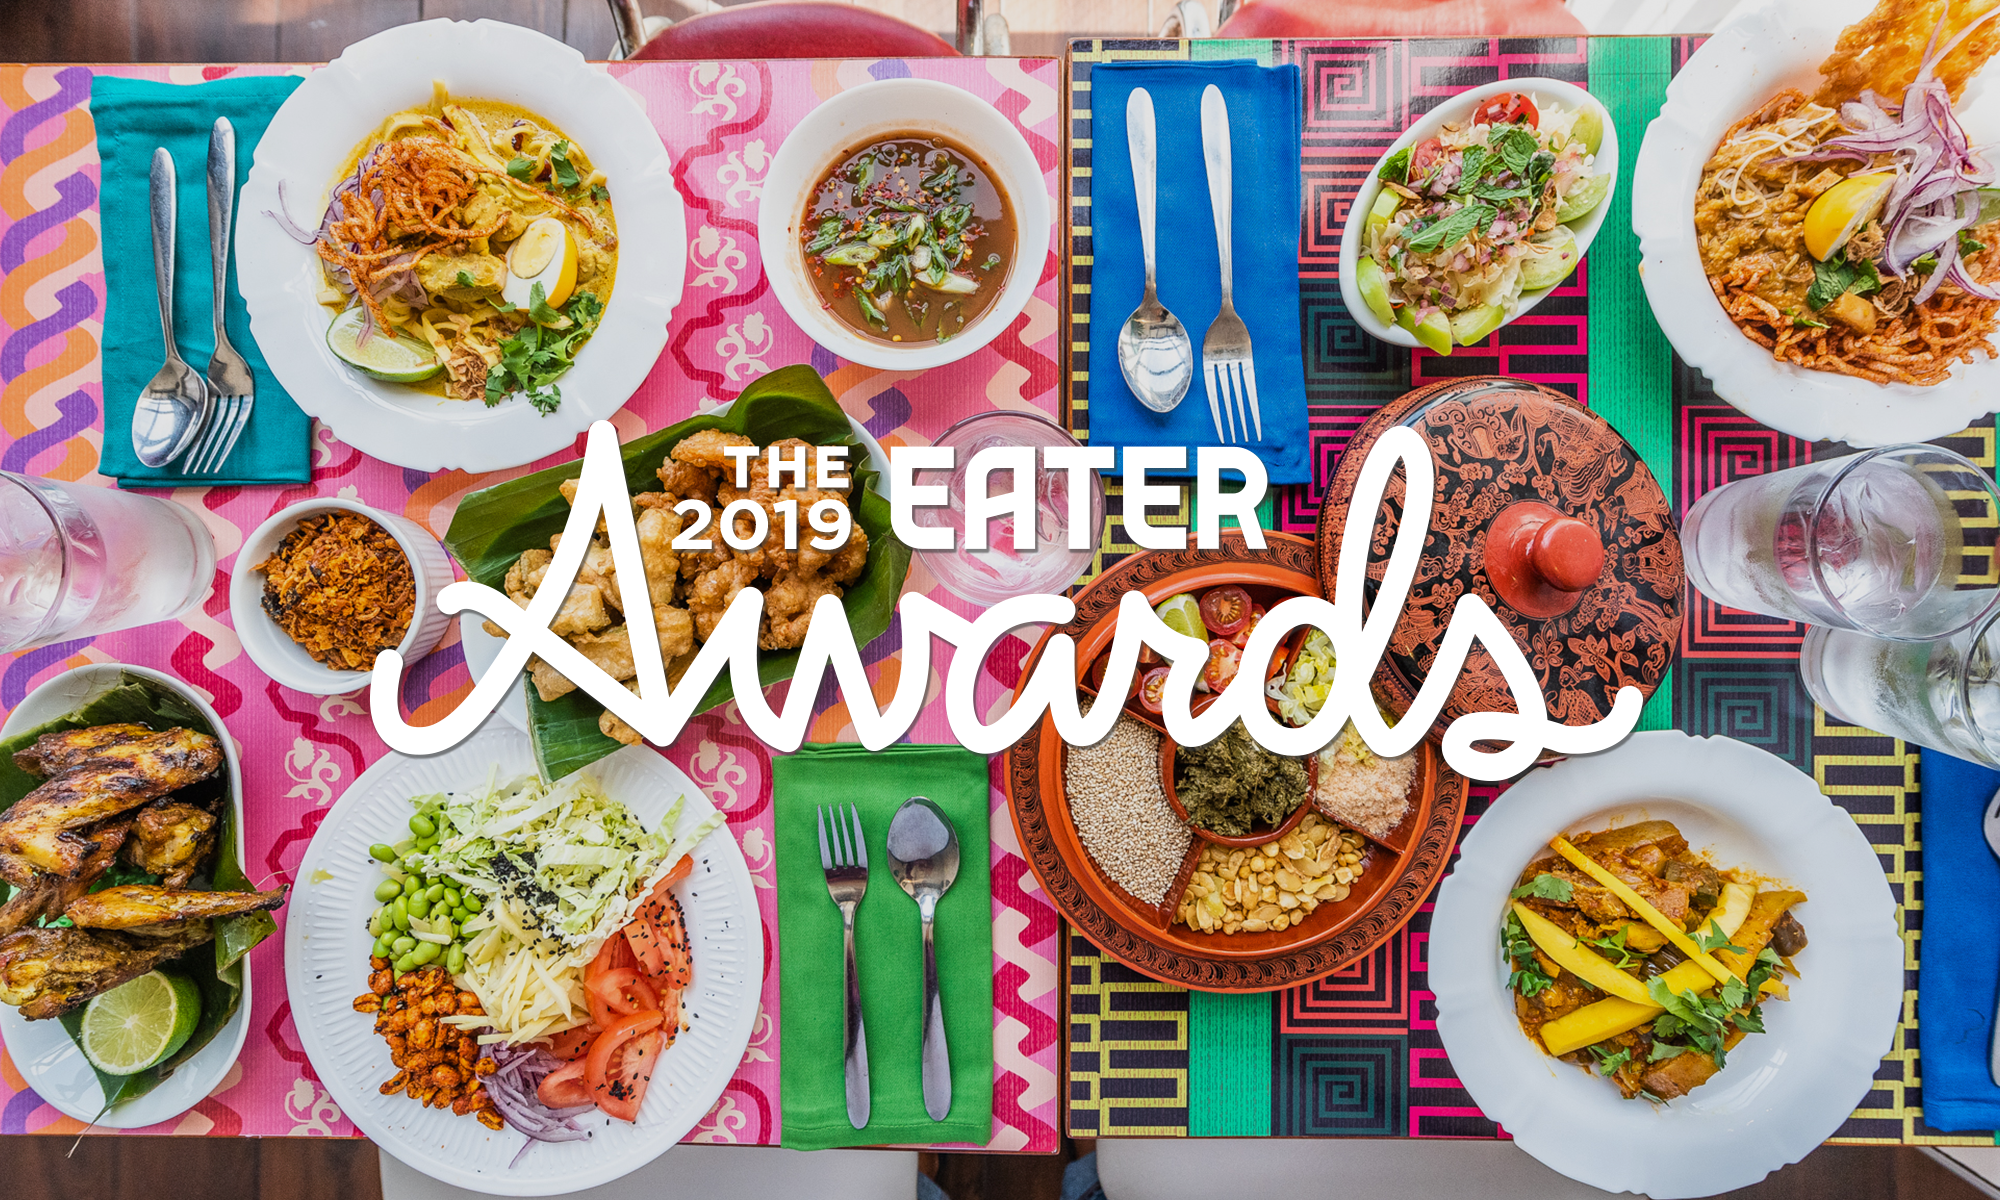 Burmese dishes from Thamee, Eater D.C.'s 2019 Restaurant of the Year